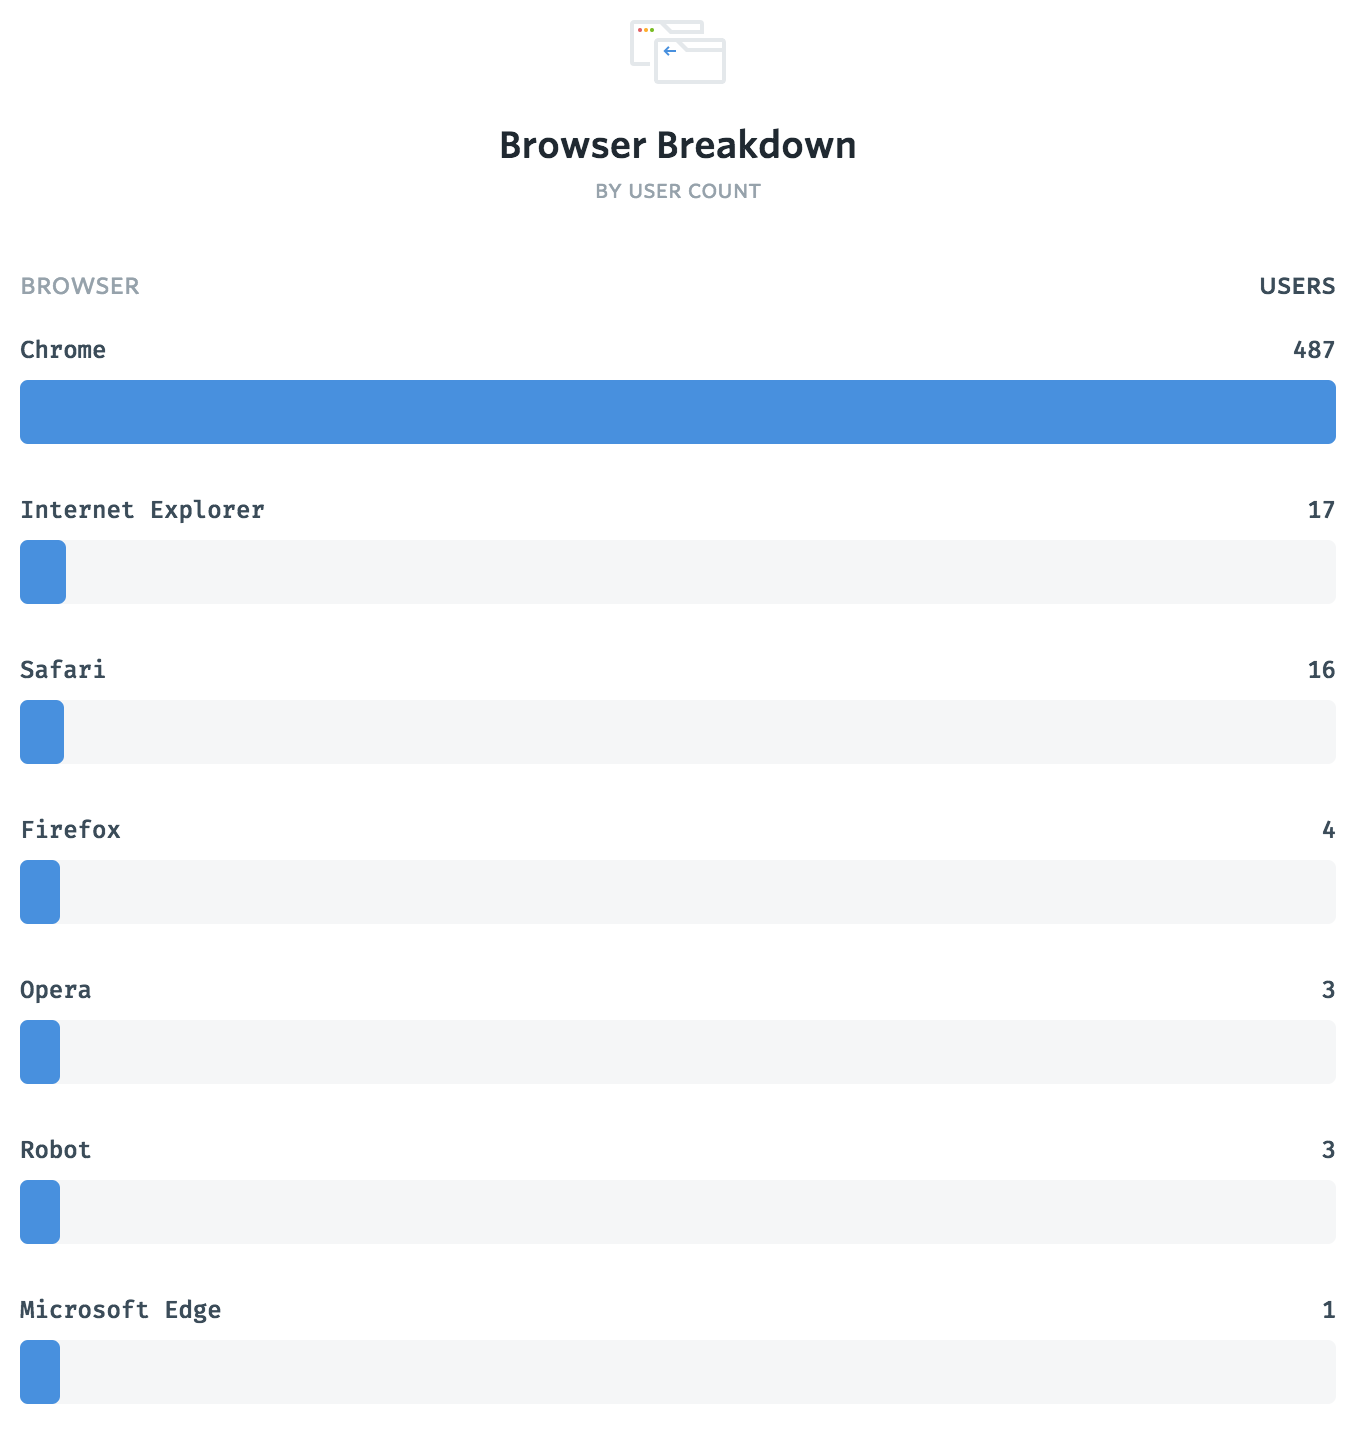 direct_1517430972075-browser_breakdown.png